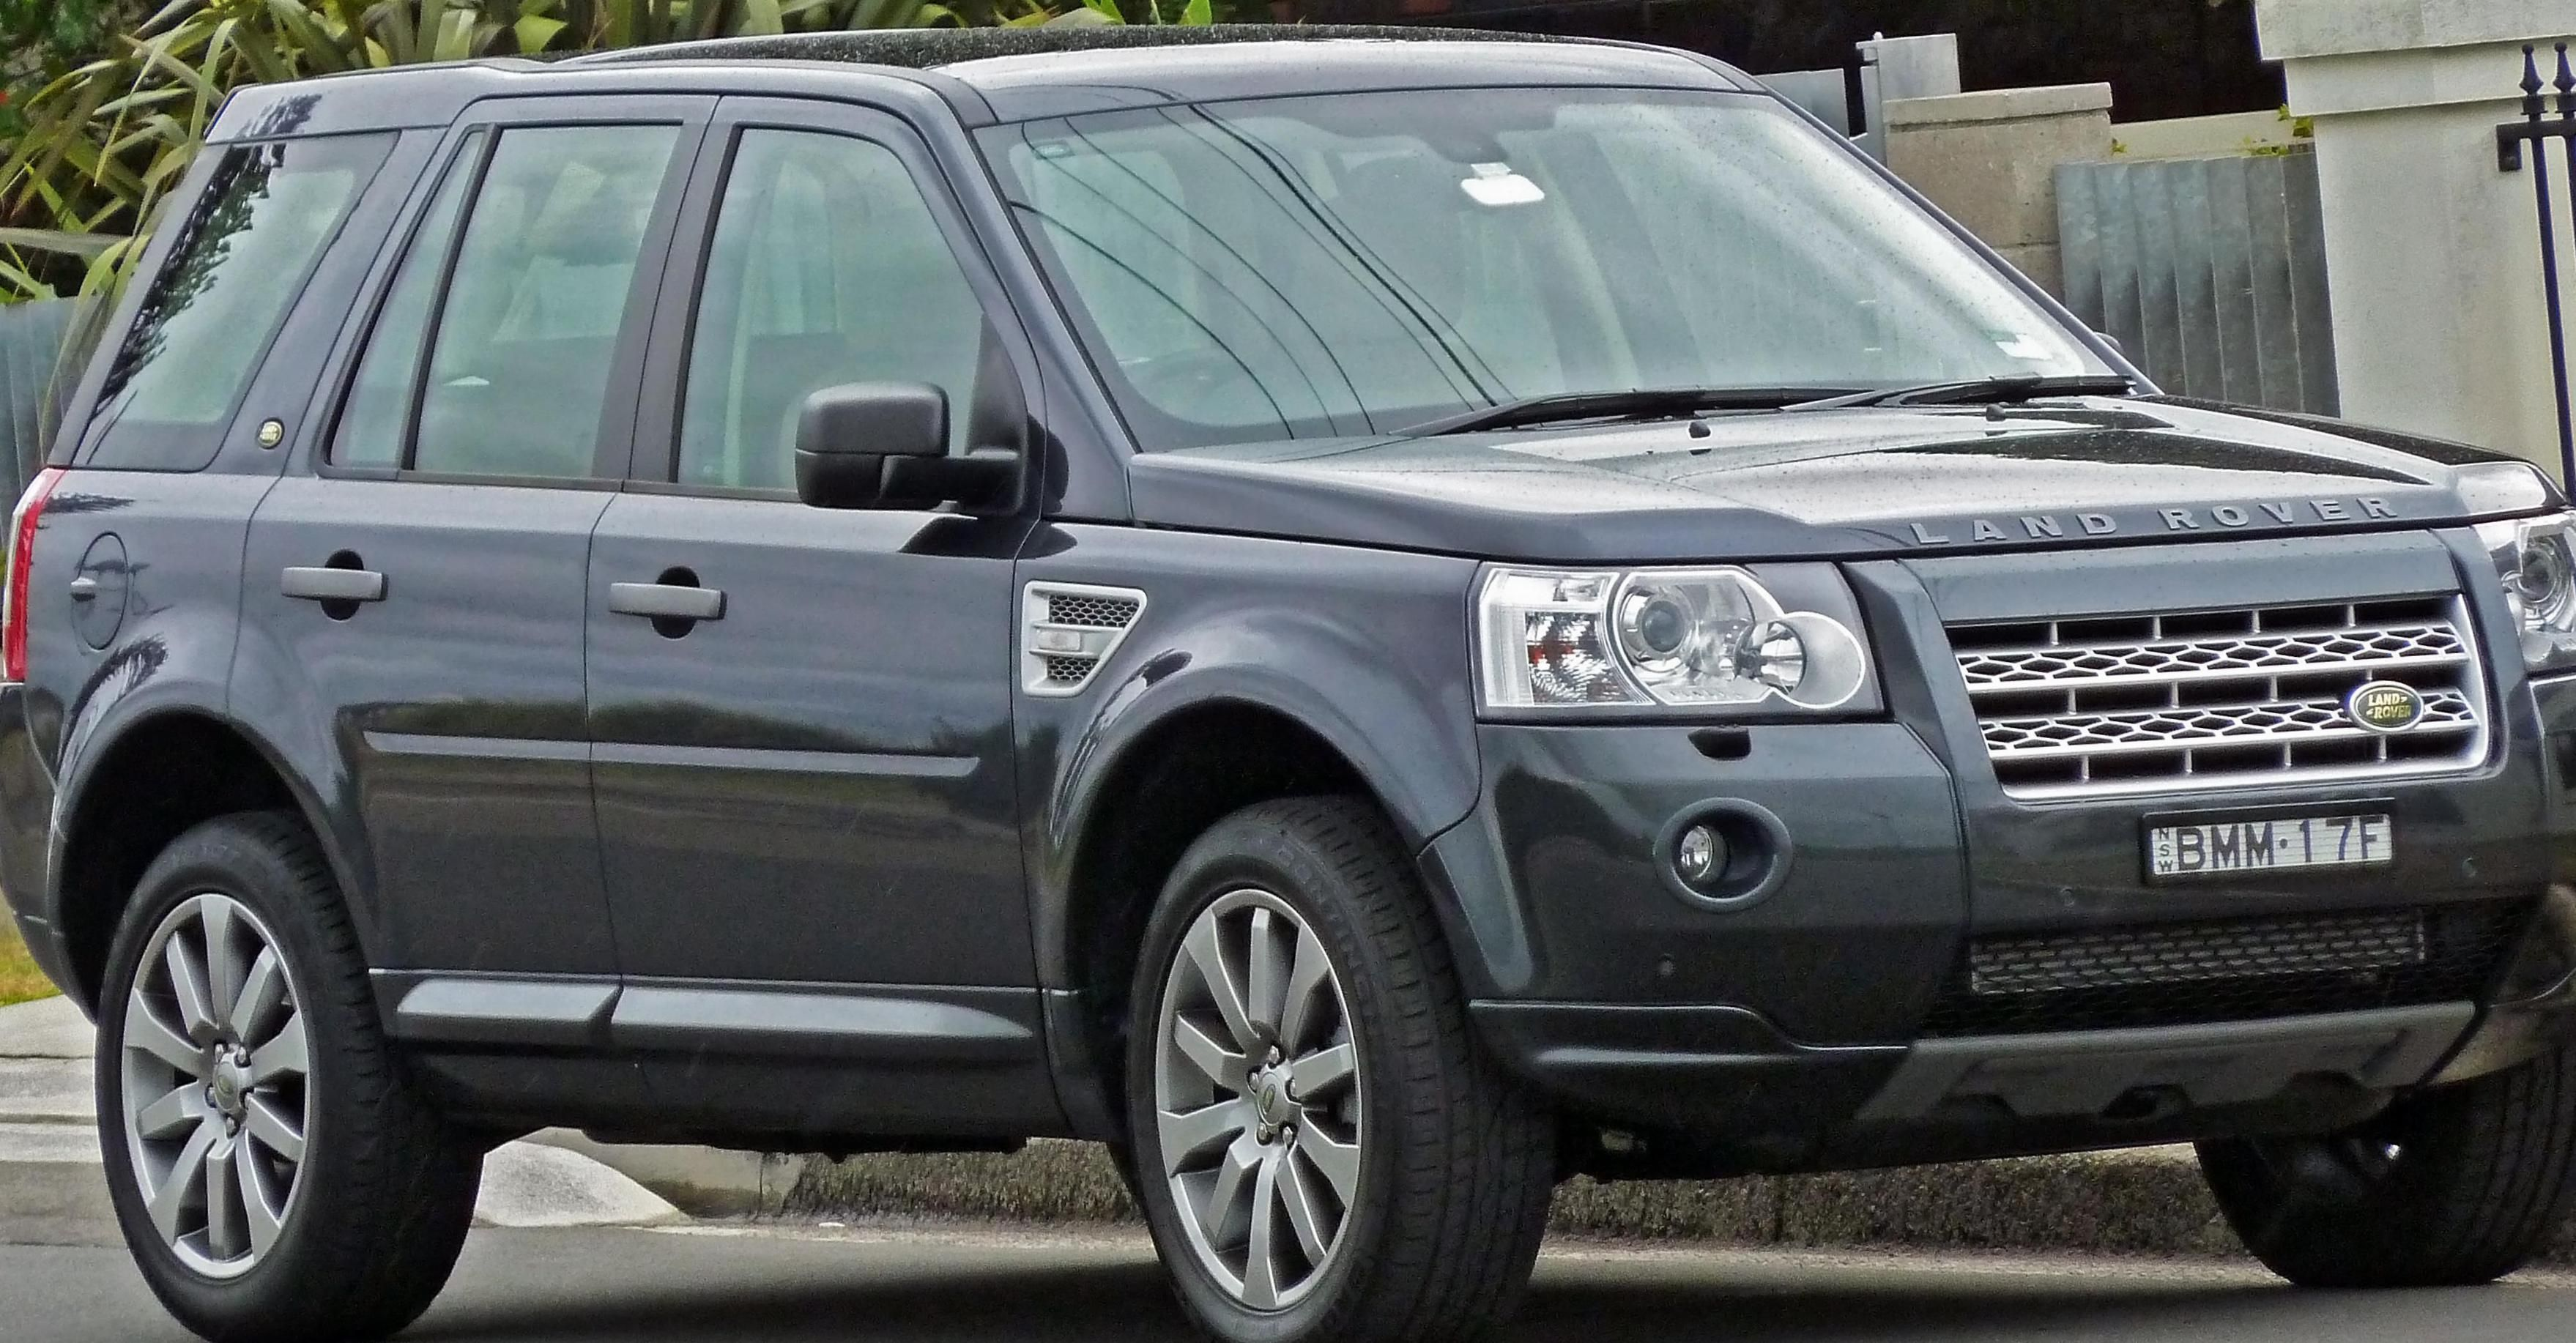 Freelander 2 Land Rover tuning